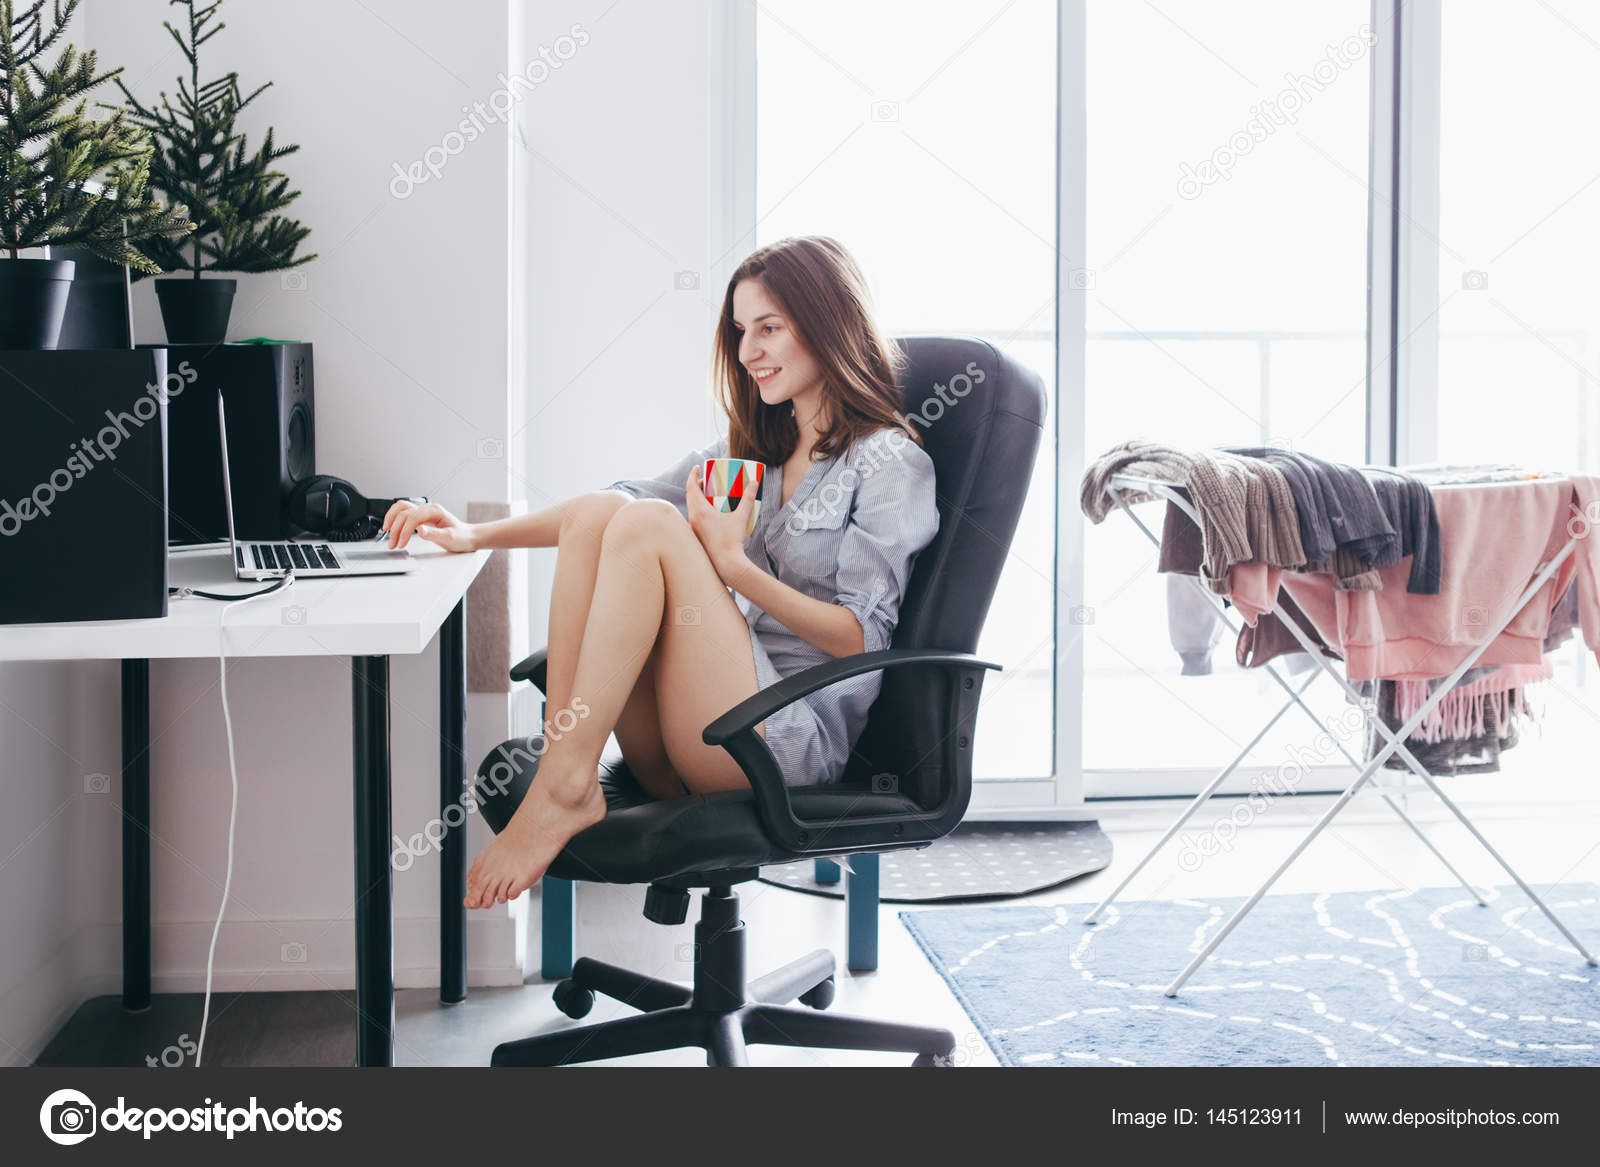 Woman sitting in office chair working  Stock Photo